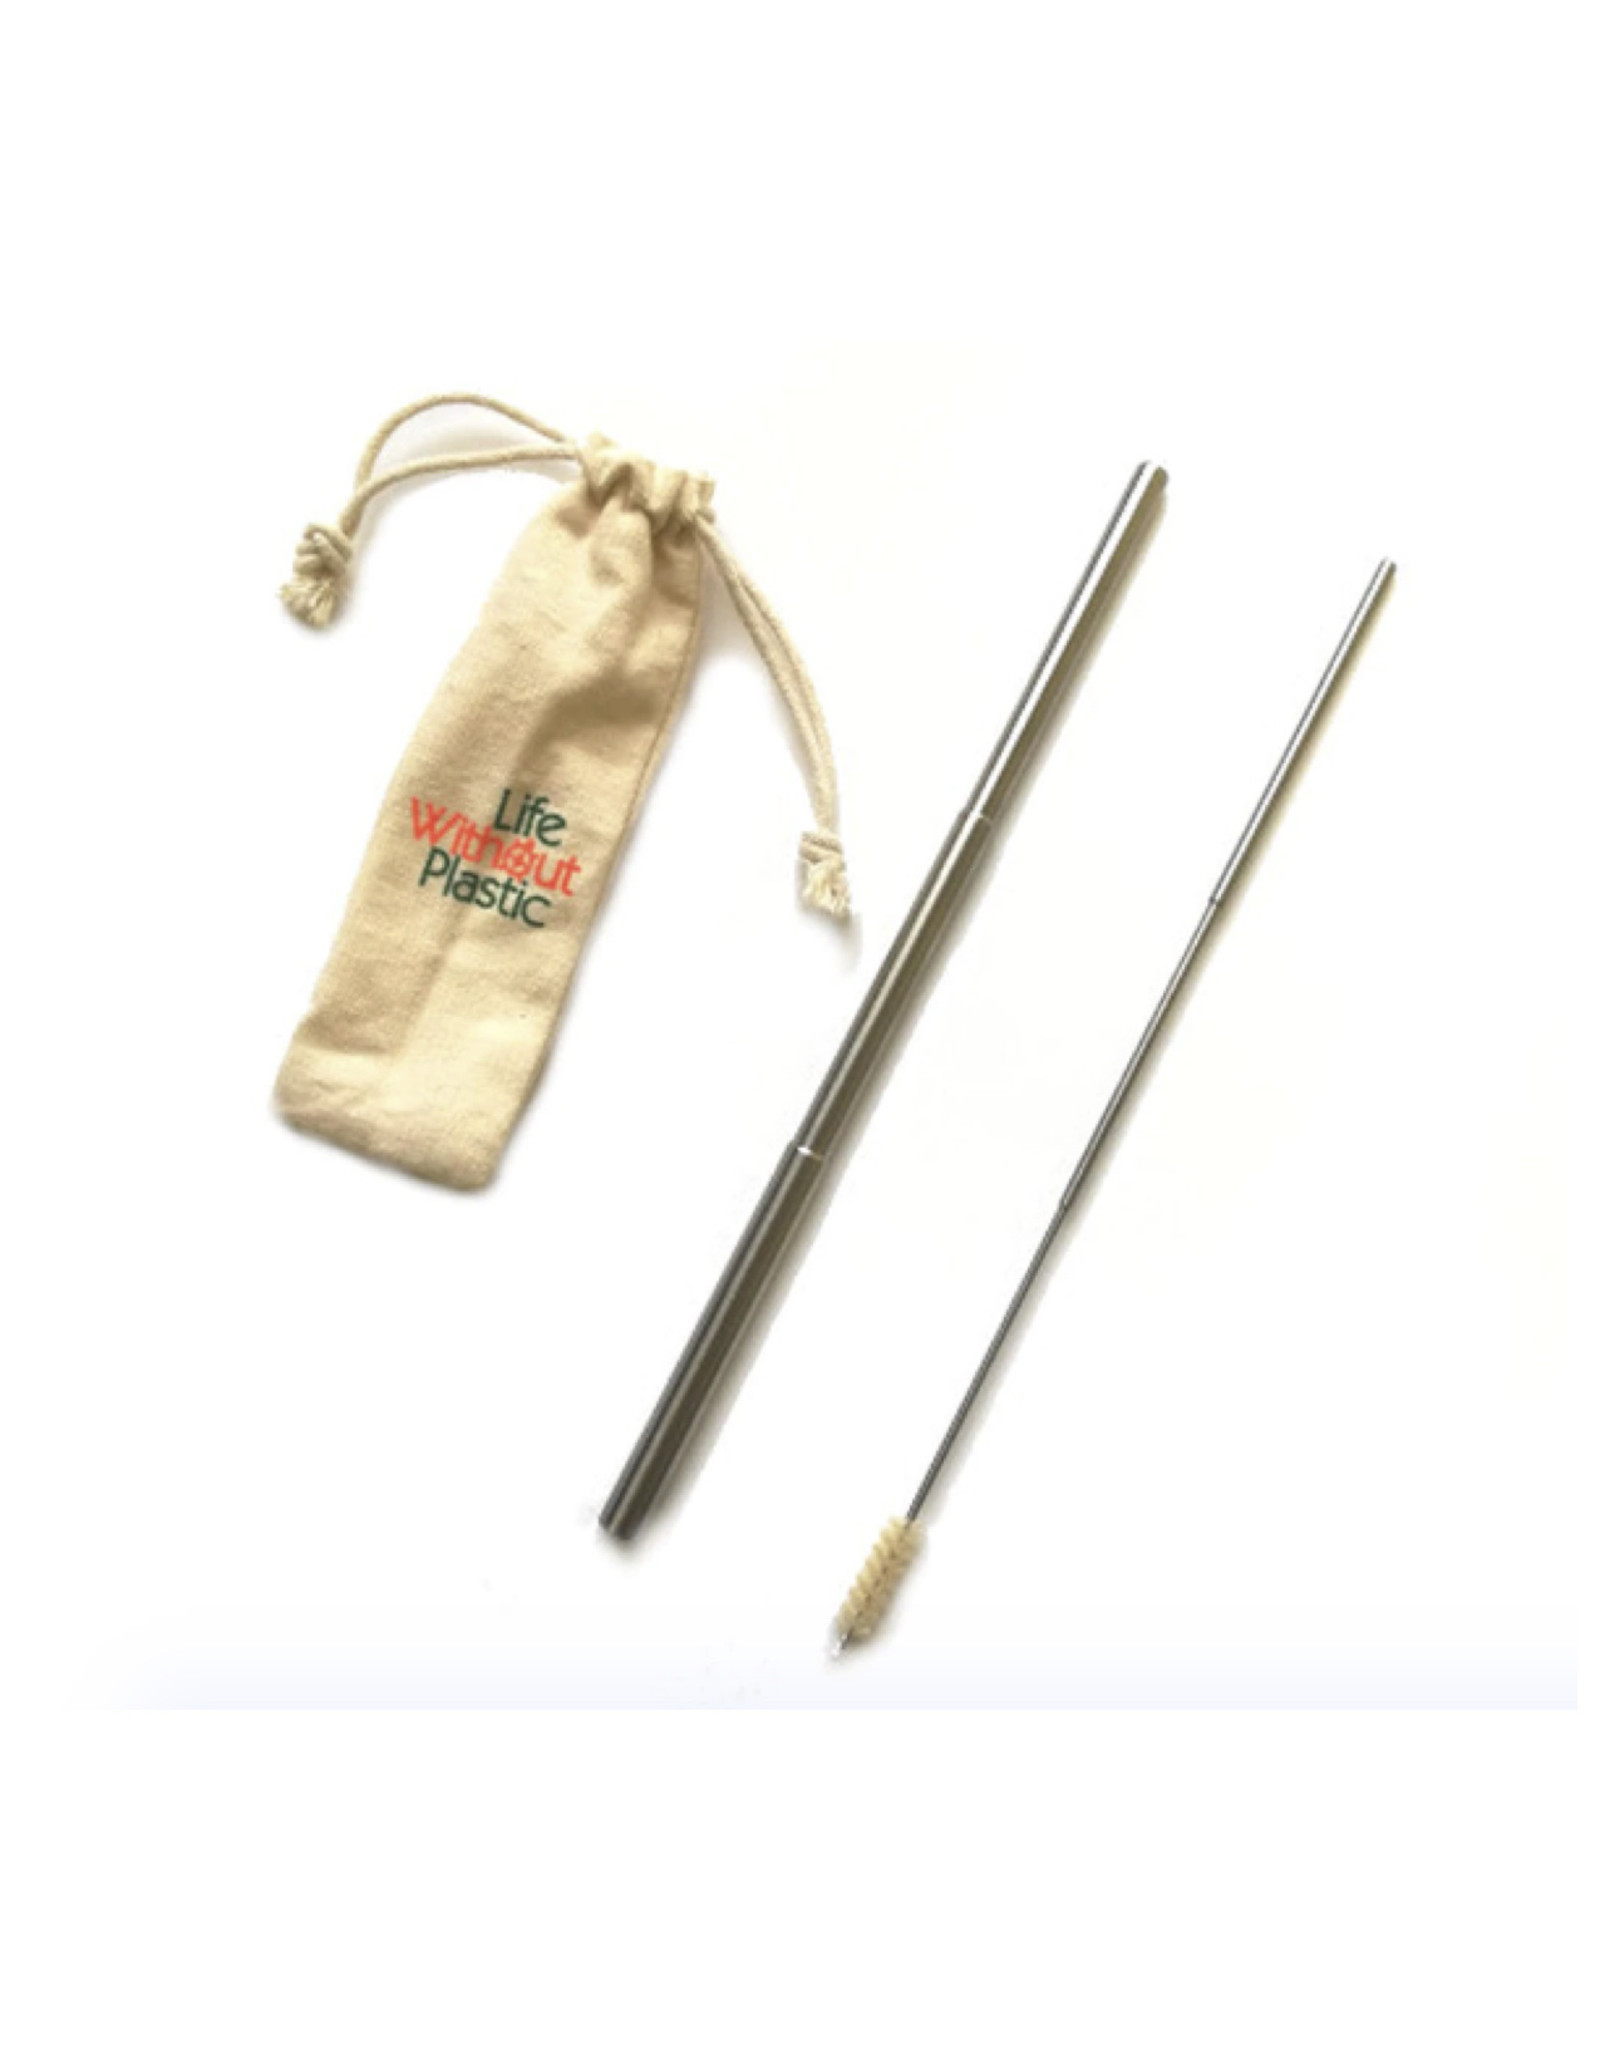 Life Without Plastic Telescopic Stainless Steel Straw with Cleaner & Pouch